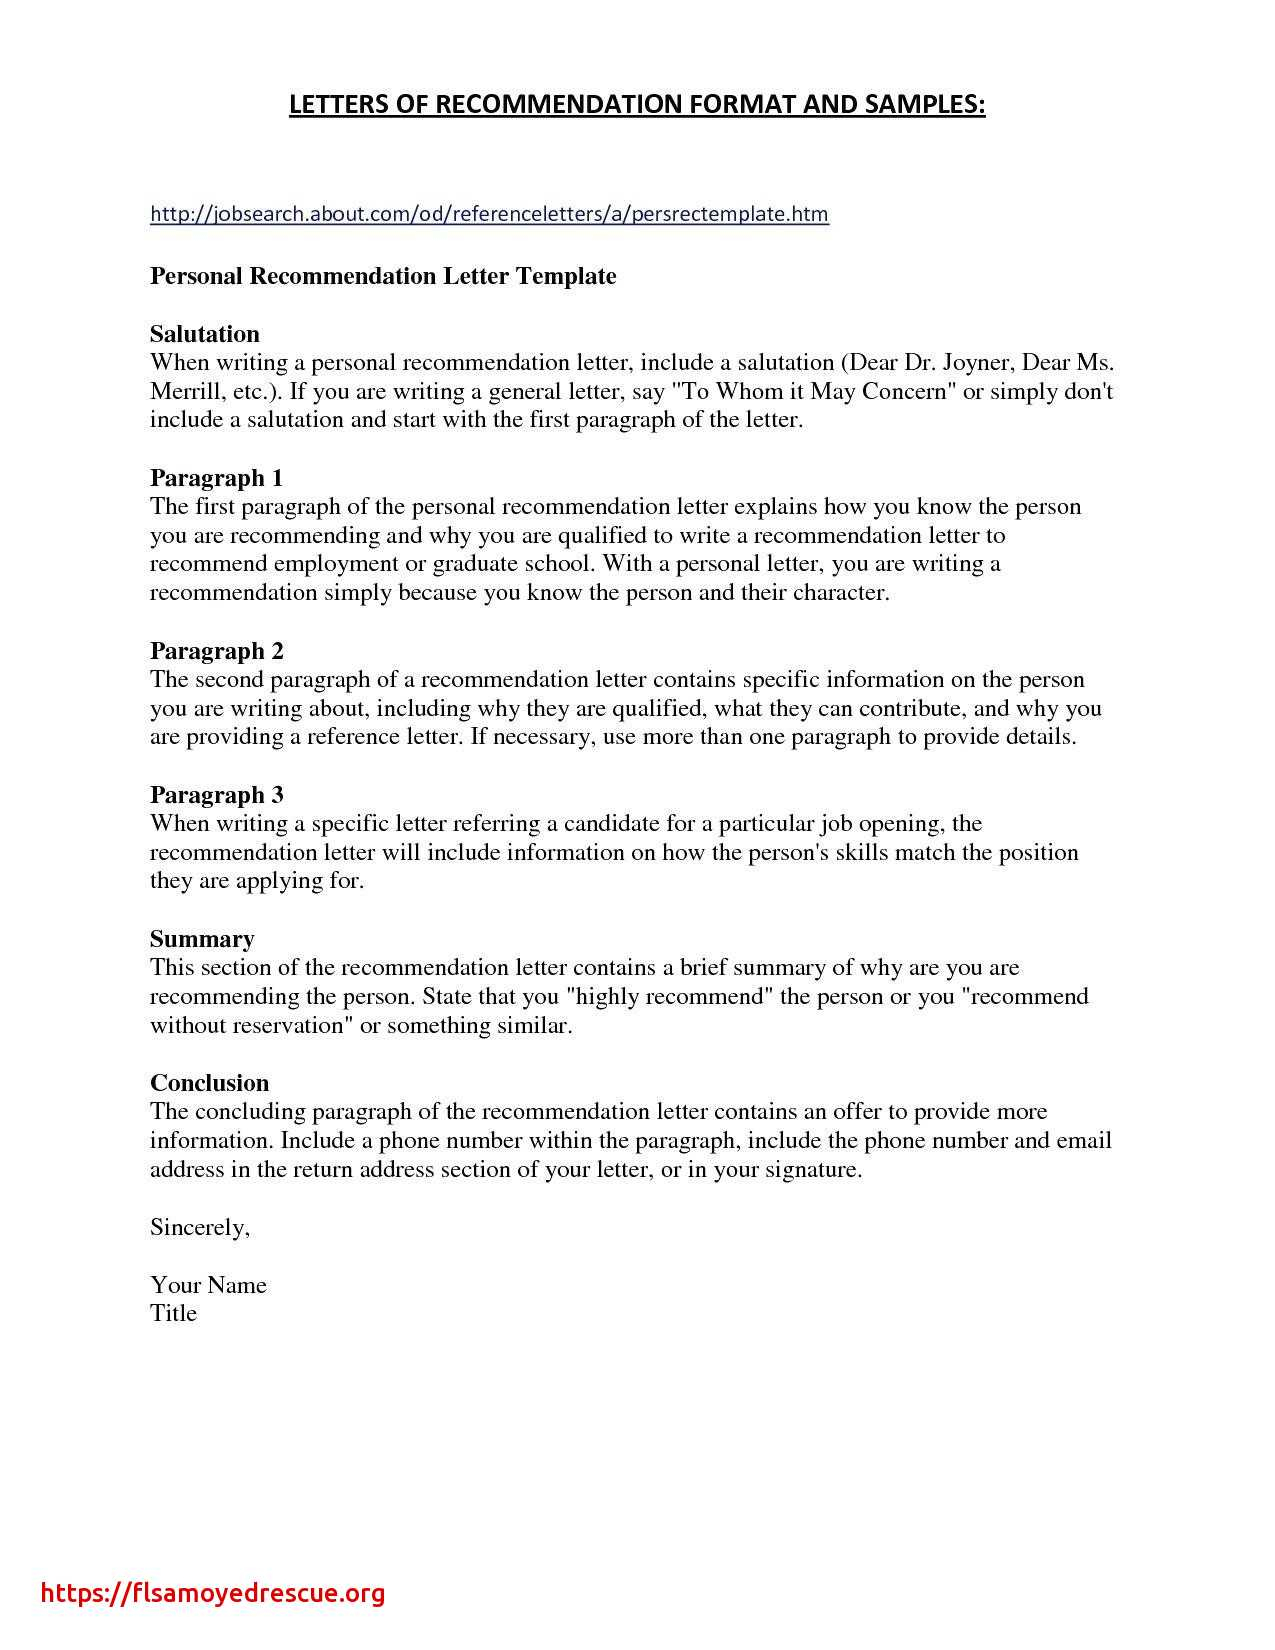 personal reference letter template example-Character Reference Letter Template Doc New Writing Letter Reference New Character Reference Letter Examples 5-f